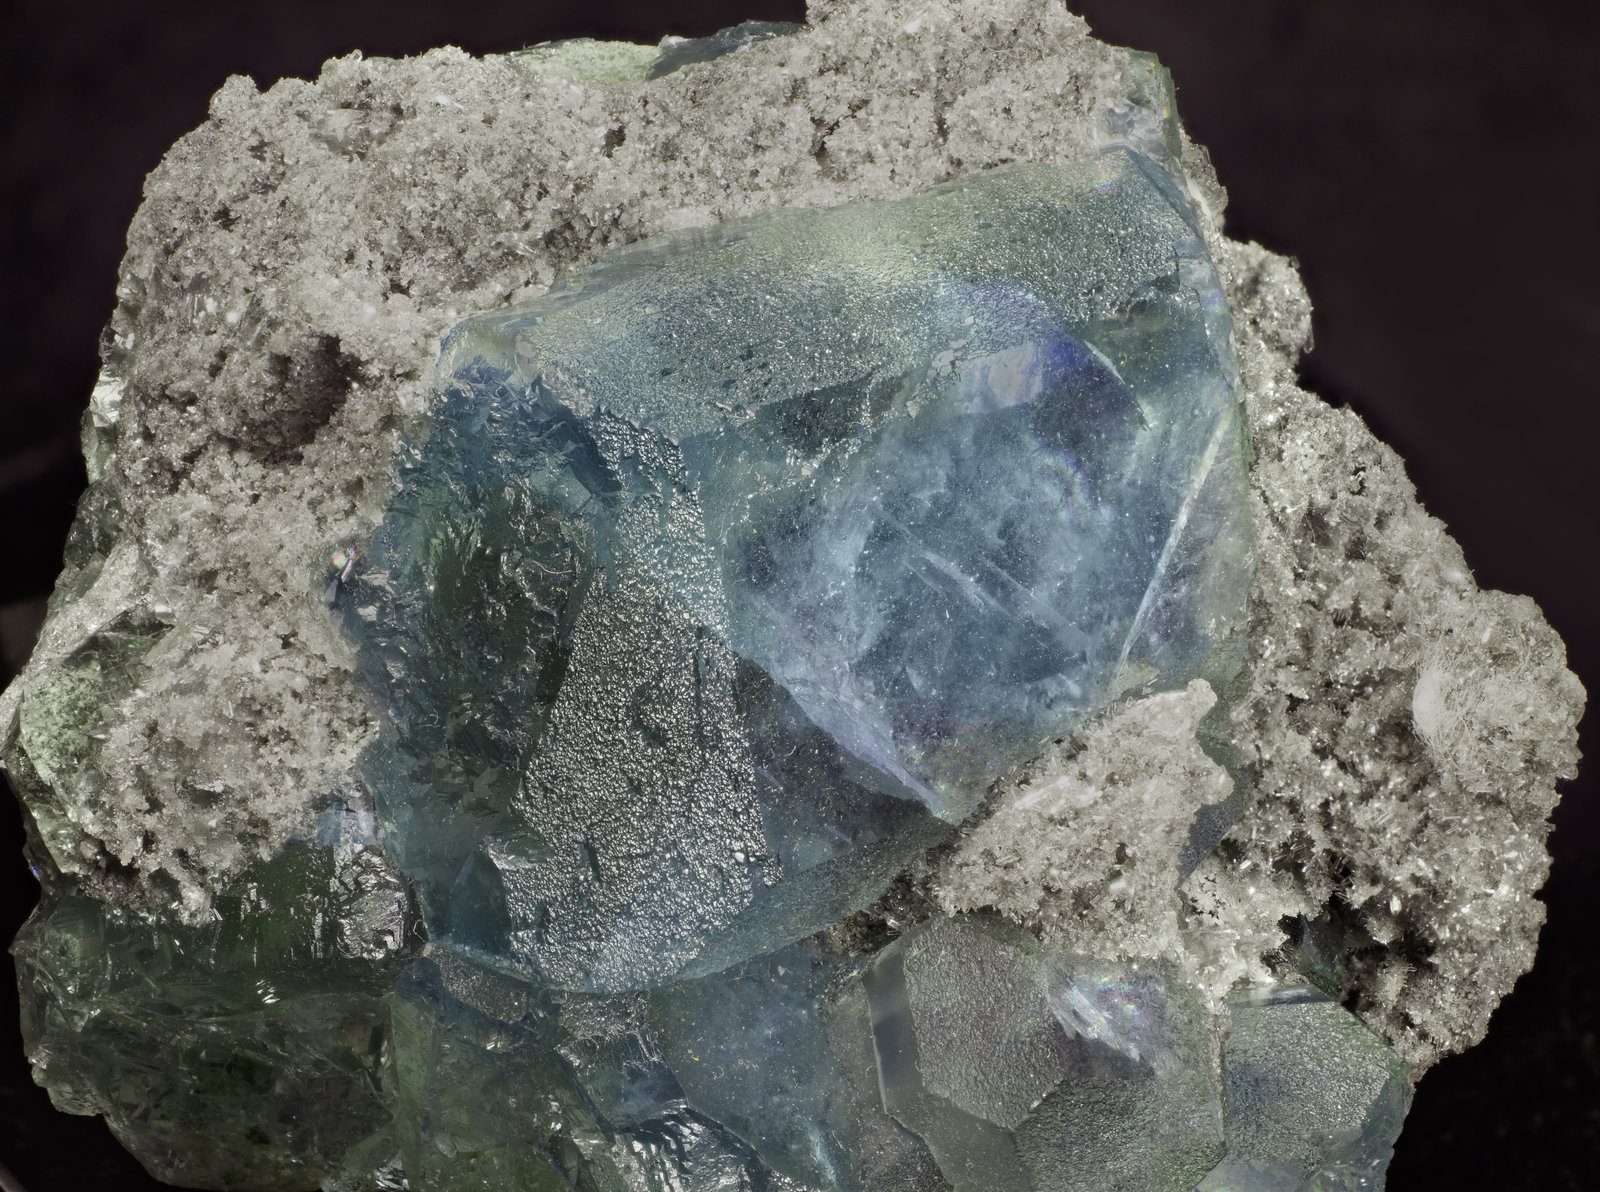 specimens/s_imagesAM0/Fluorite-MG89AM0_2466_d2.jpg